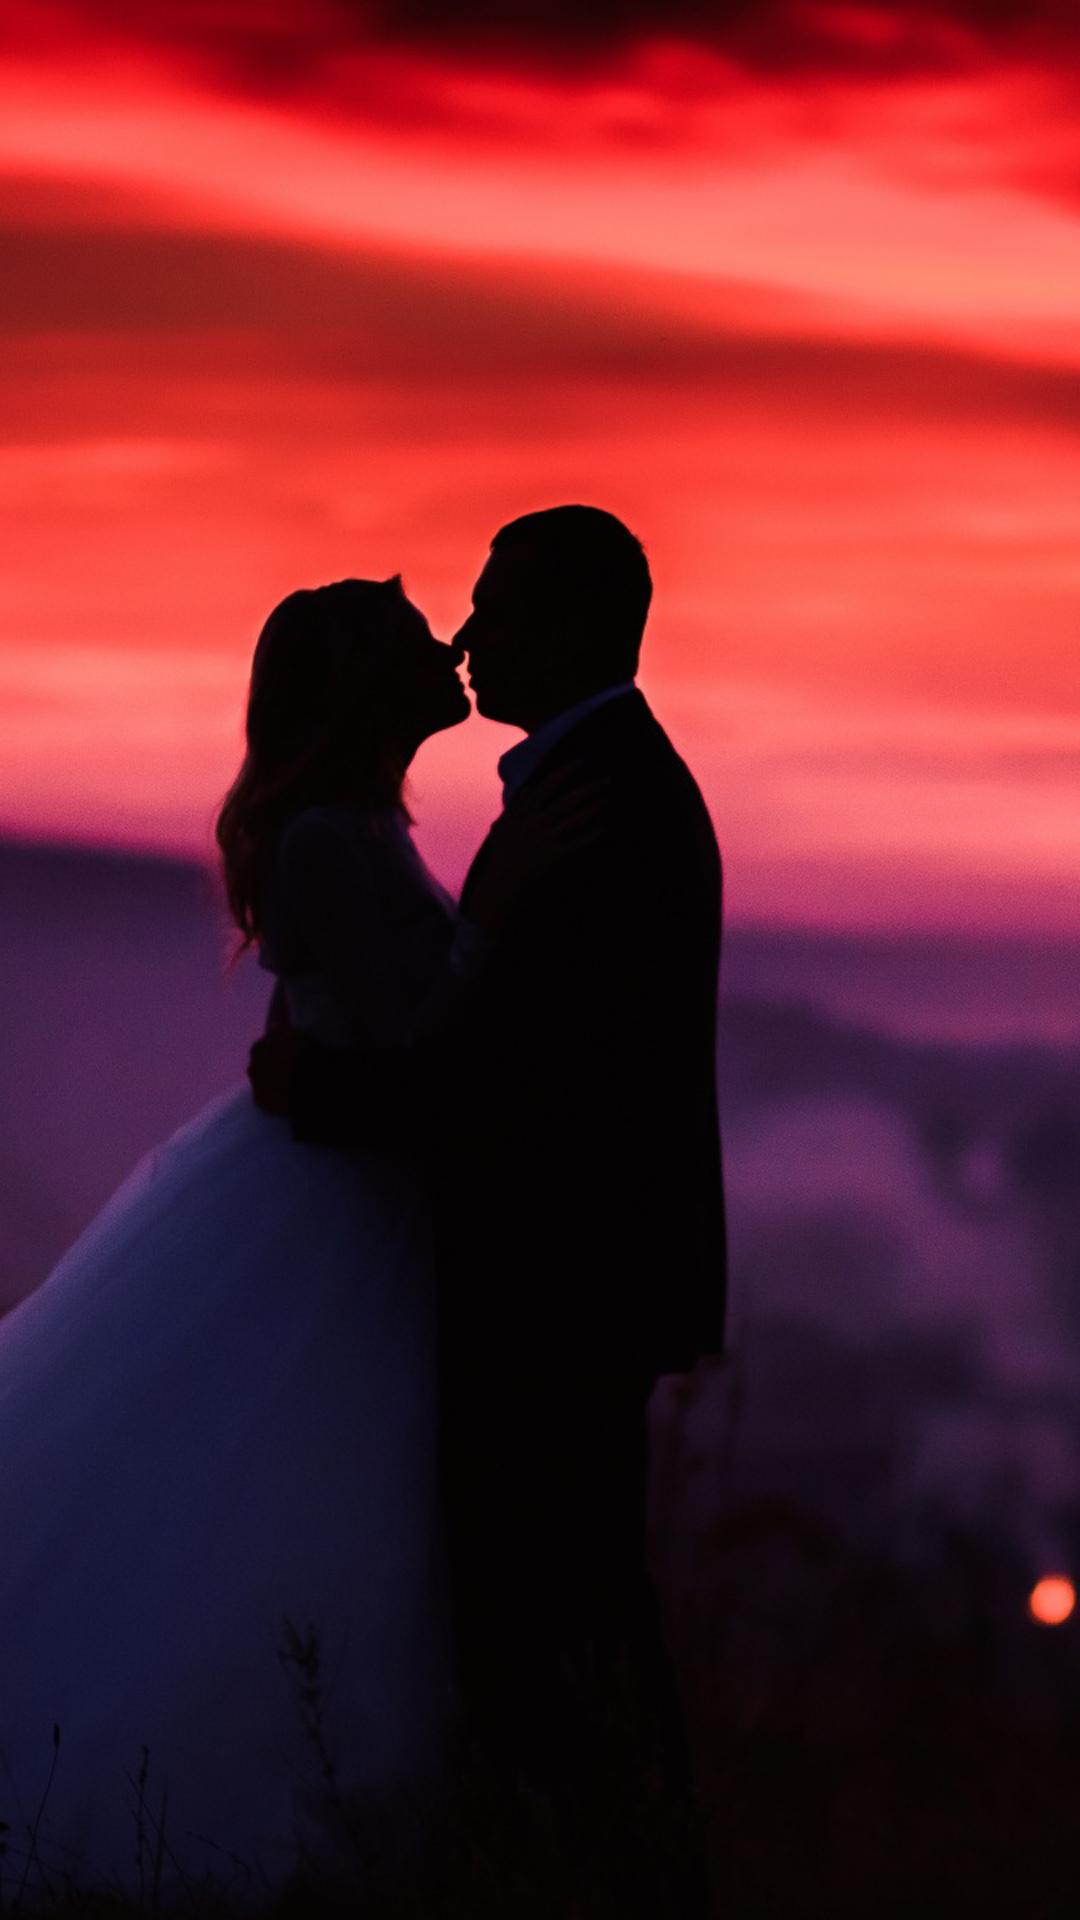 Kissing Lovers Silhouette